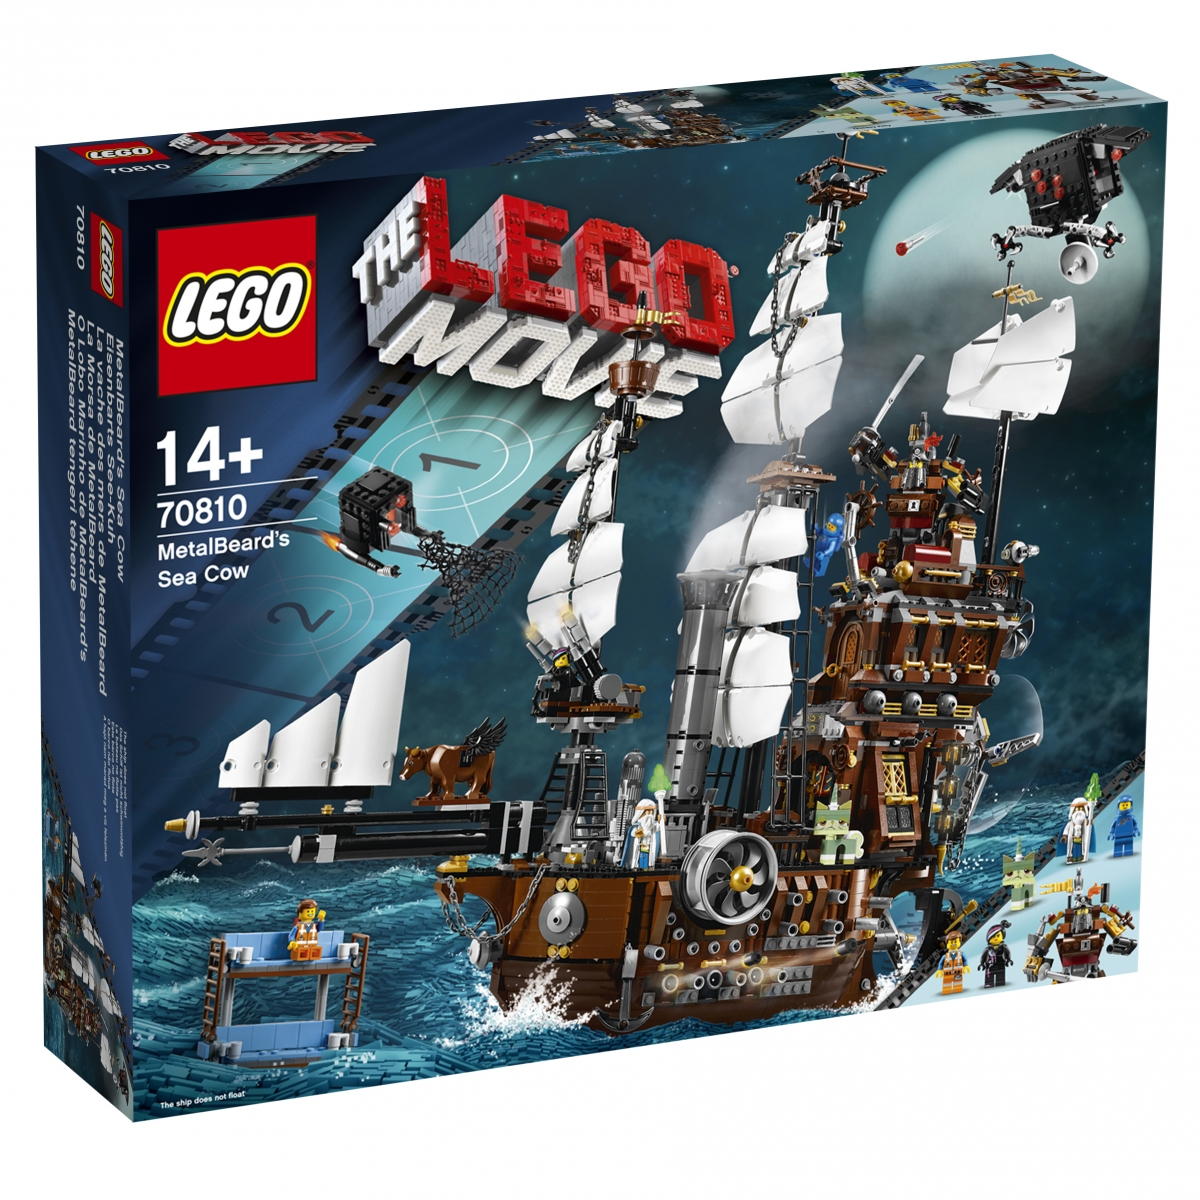 The LEGO Movie 70810 MetalBeard's Sea Cow